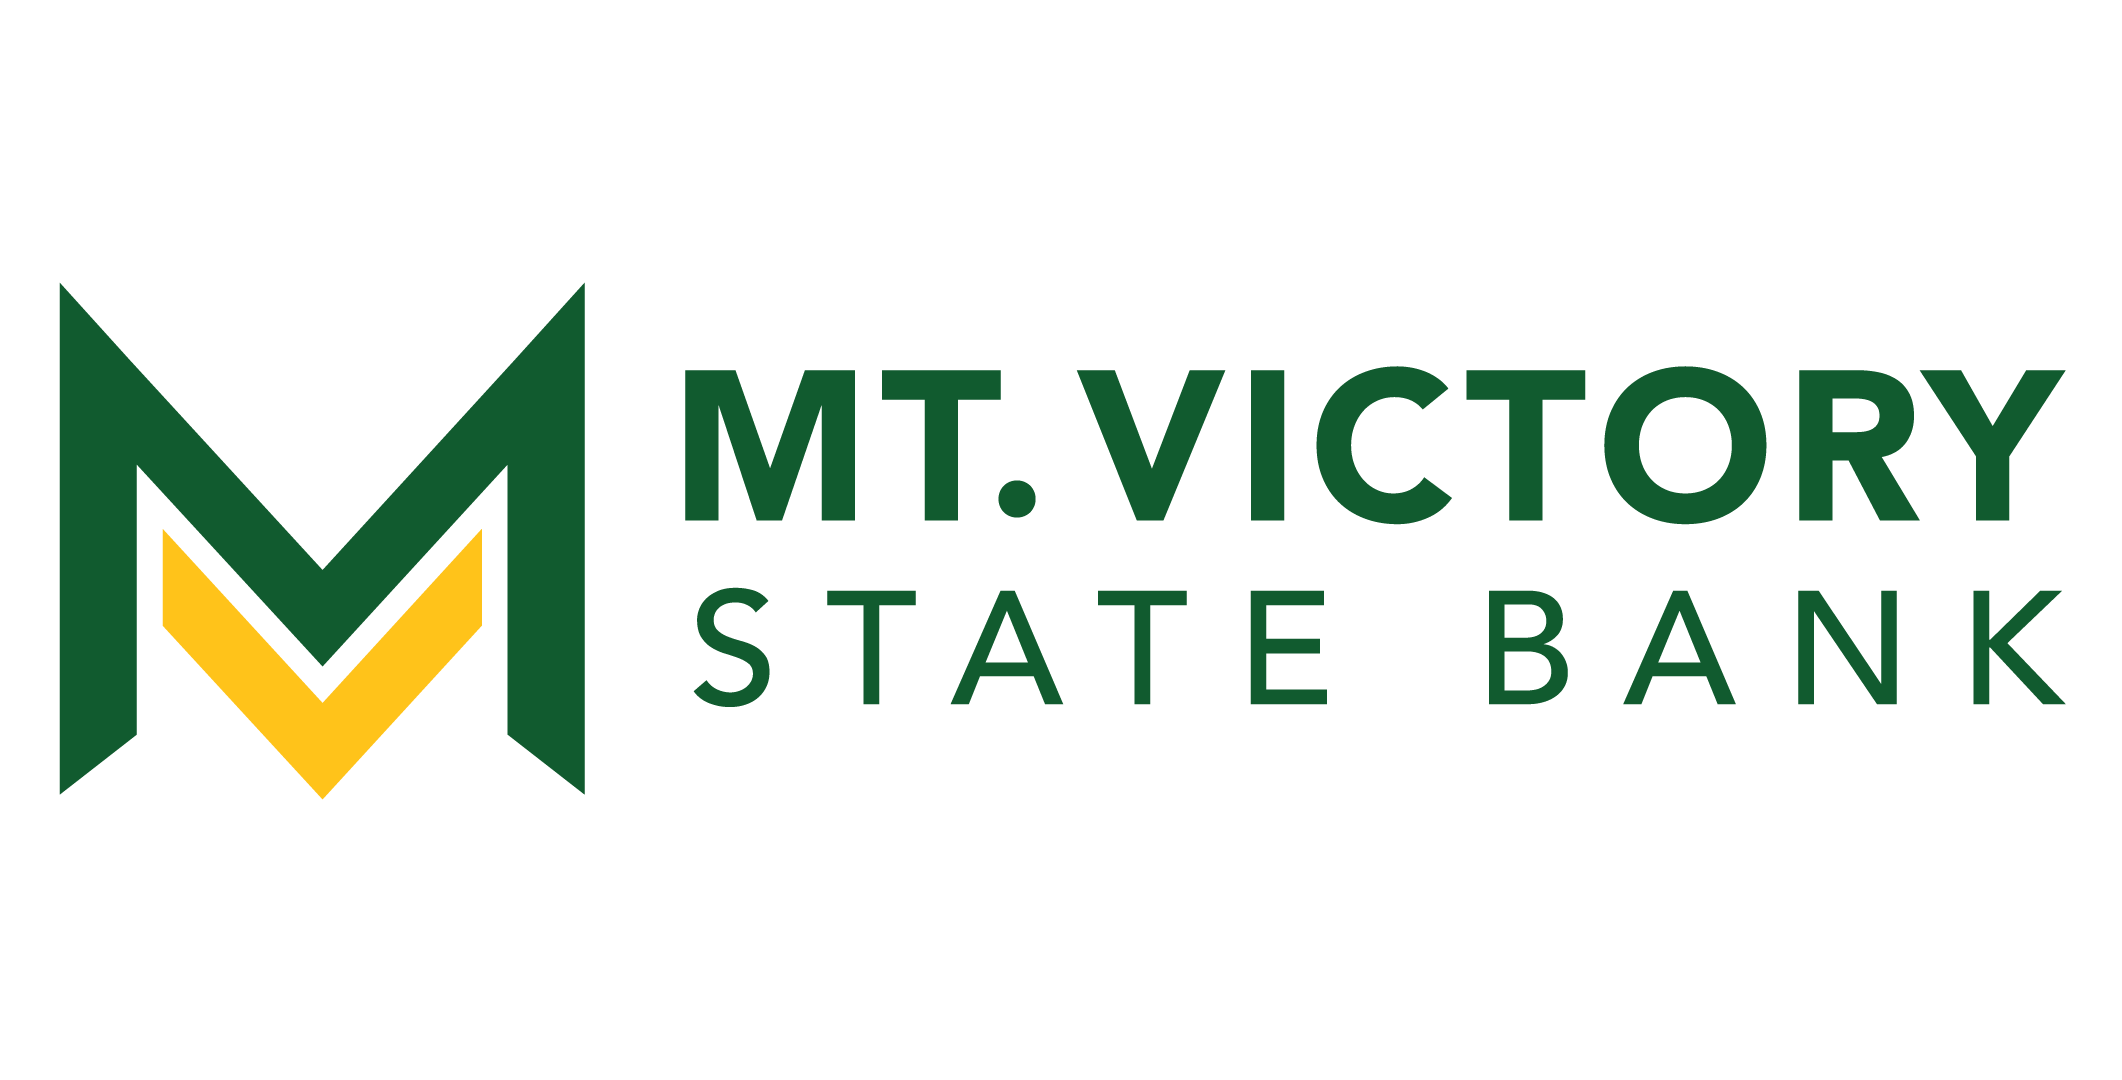 The Mt. Victory State Bank